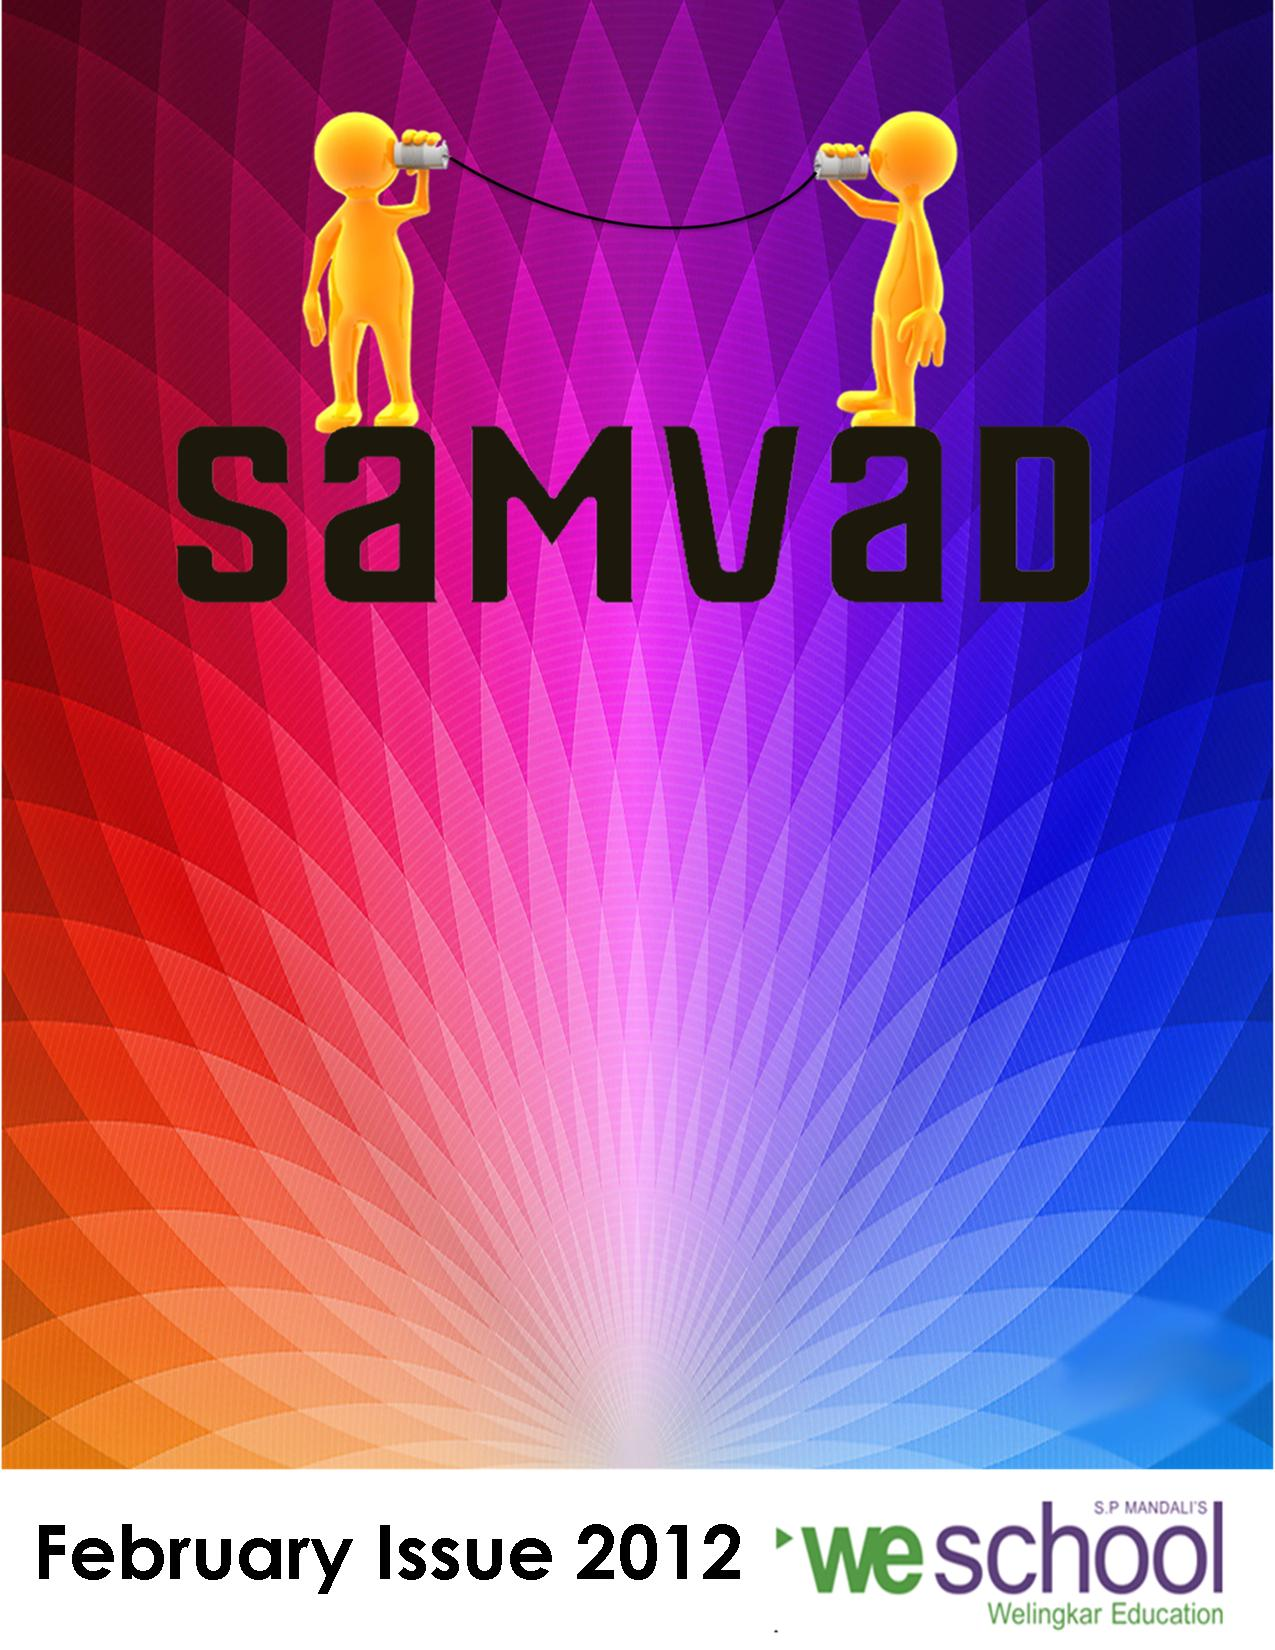 Greetings from Team Samvad!